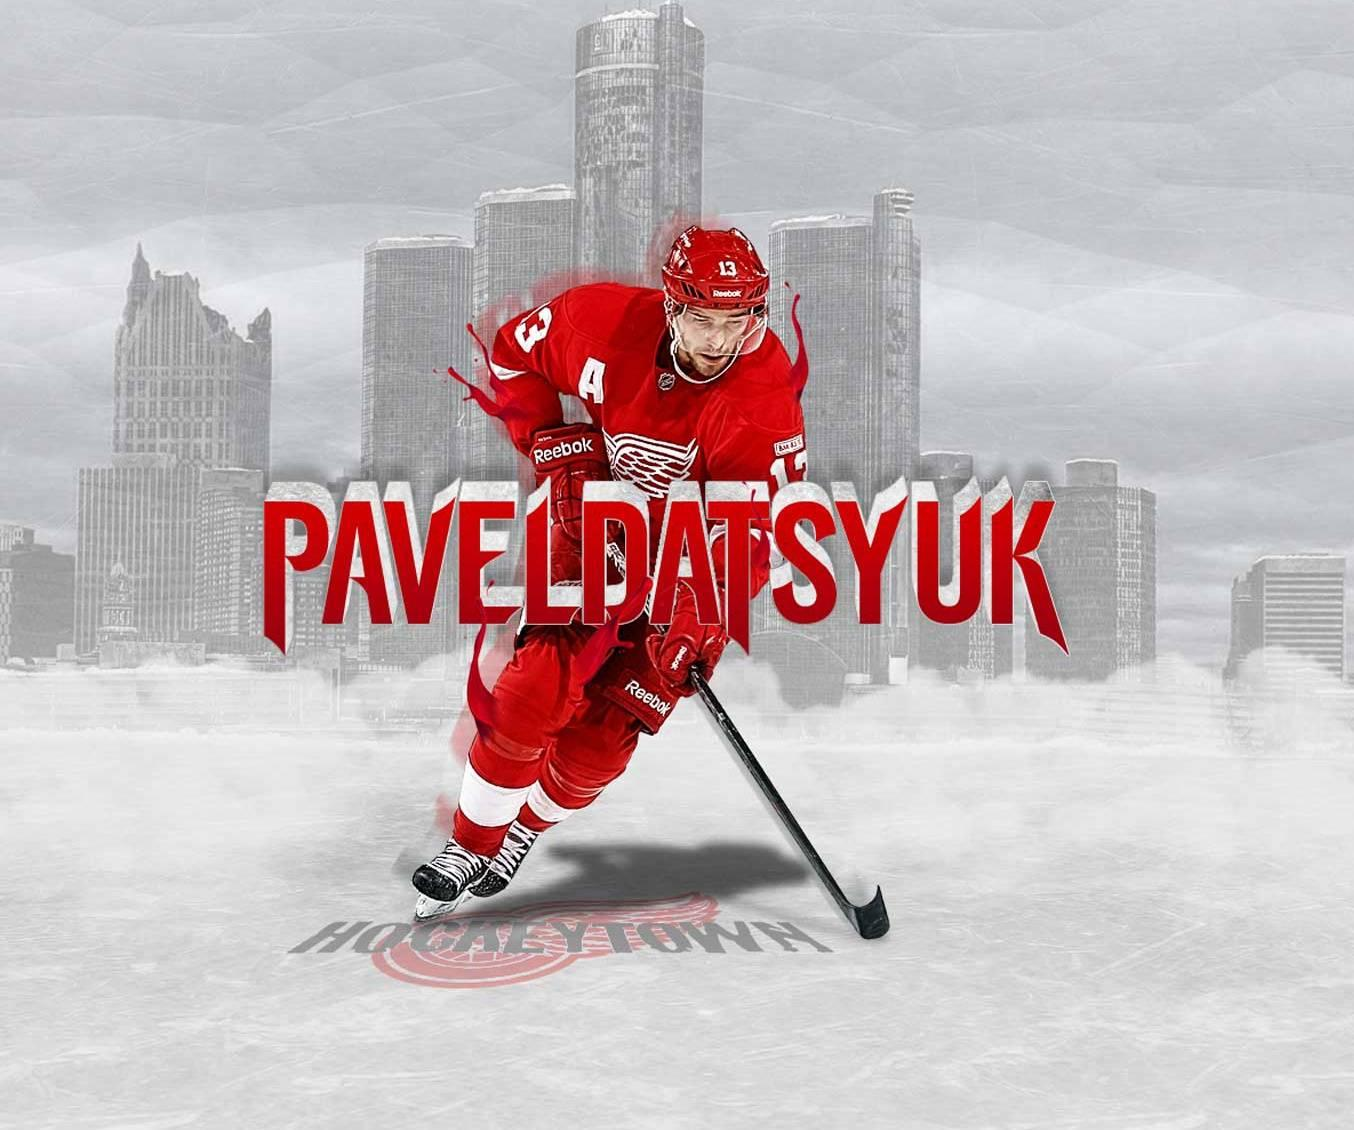 Pavel Datsyuk Wallpapers by Bersson29